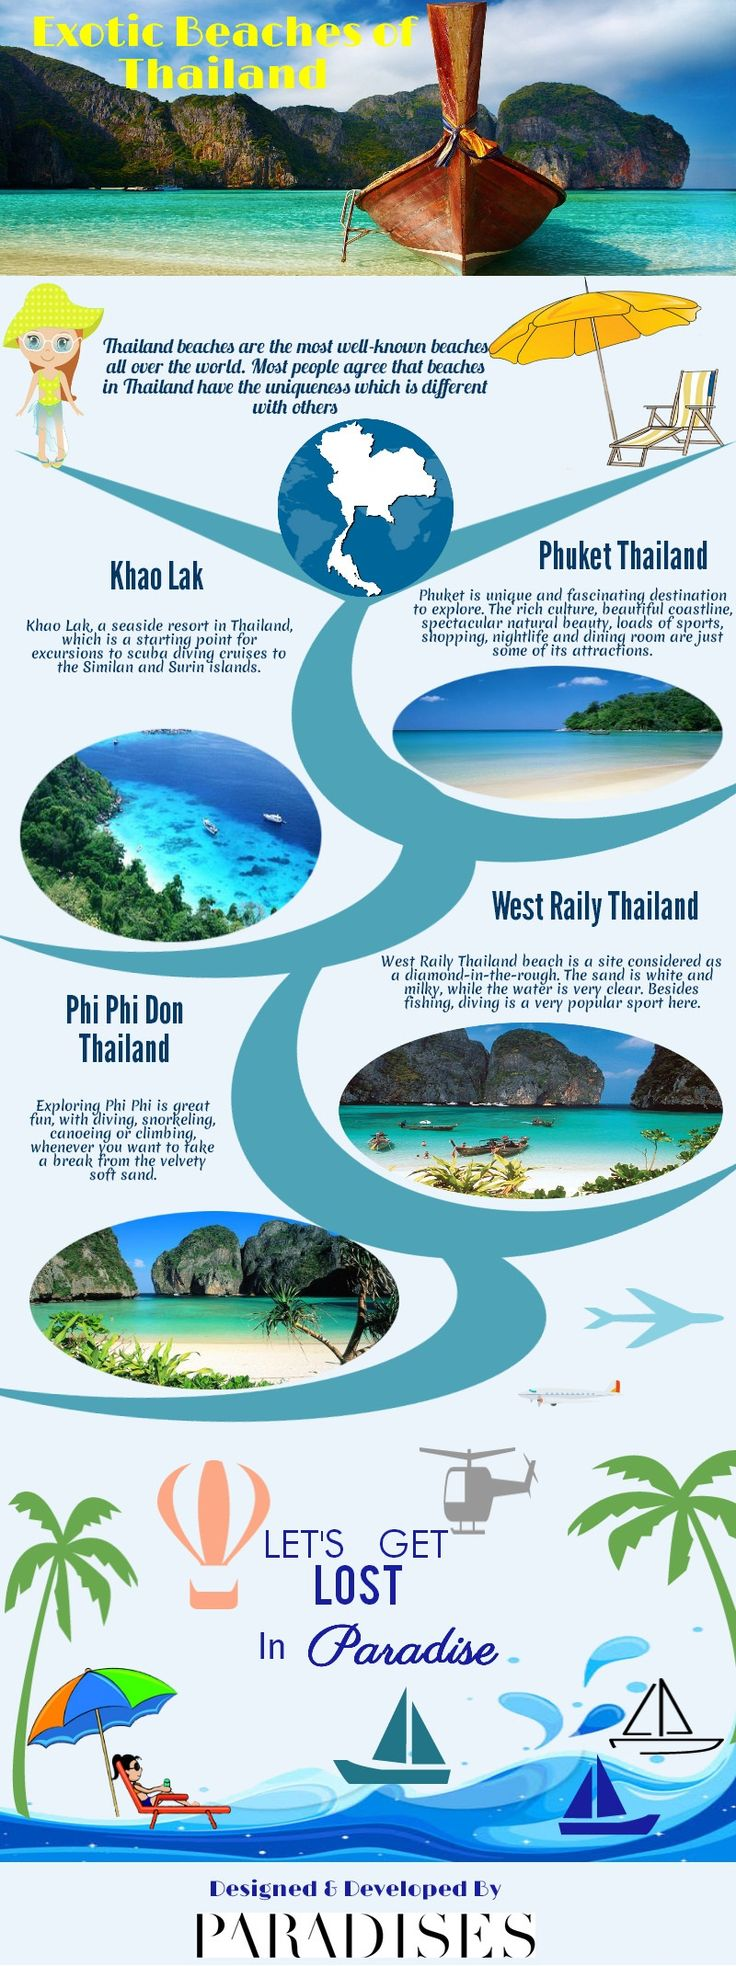 Tourism: Thailand has some of the most well known beaches in the world. In 2016, there was an estimated 32 million people who visited Thailand .https://en.wikipedia.org/wiki/Tourism_in_Thailand